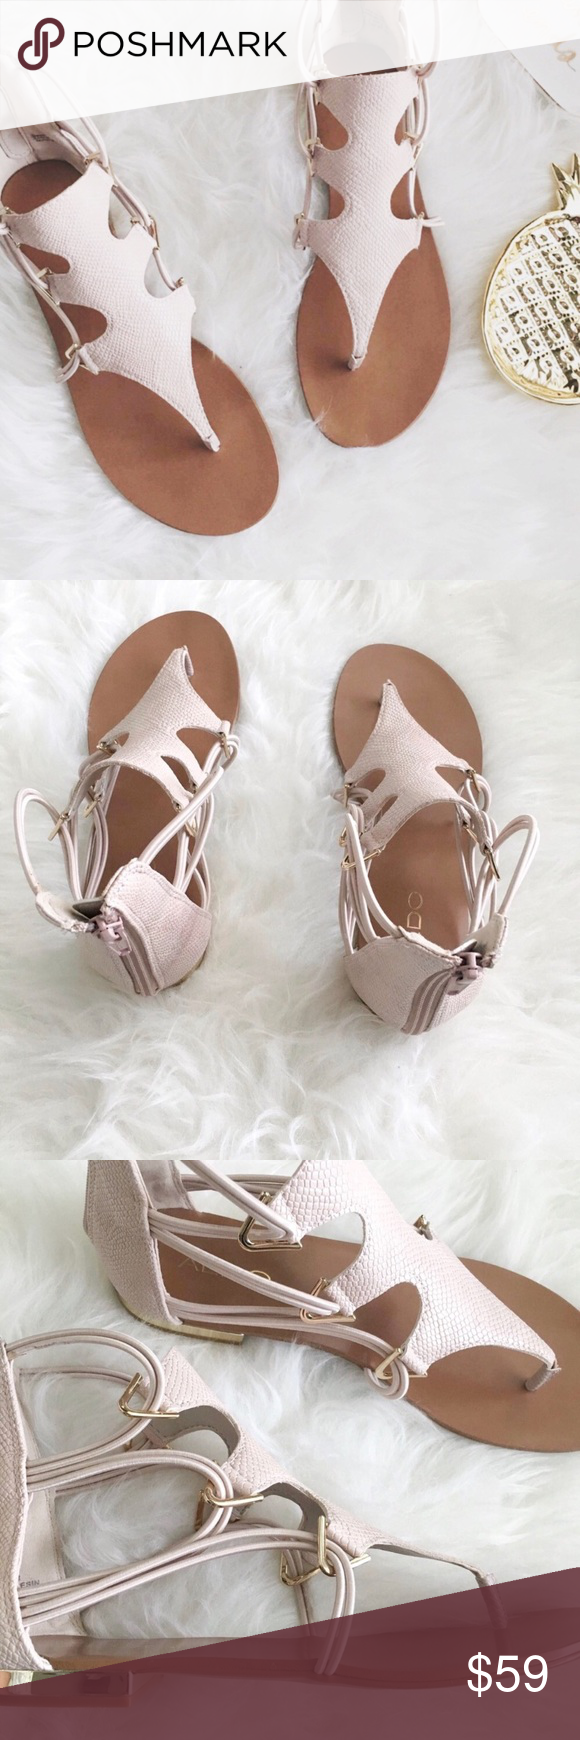 ac0500d720e0 nwt  aldo • barbiana gladiator sandals in tan 🛍  aldo ▫️gladiator sandals  in tan + gold (the tan almost looks like a blush pink - so pretty) ▫️back  zip ...